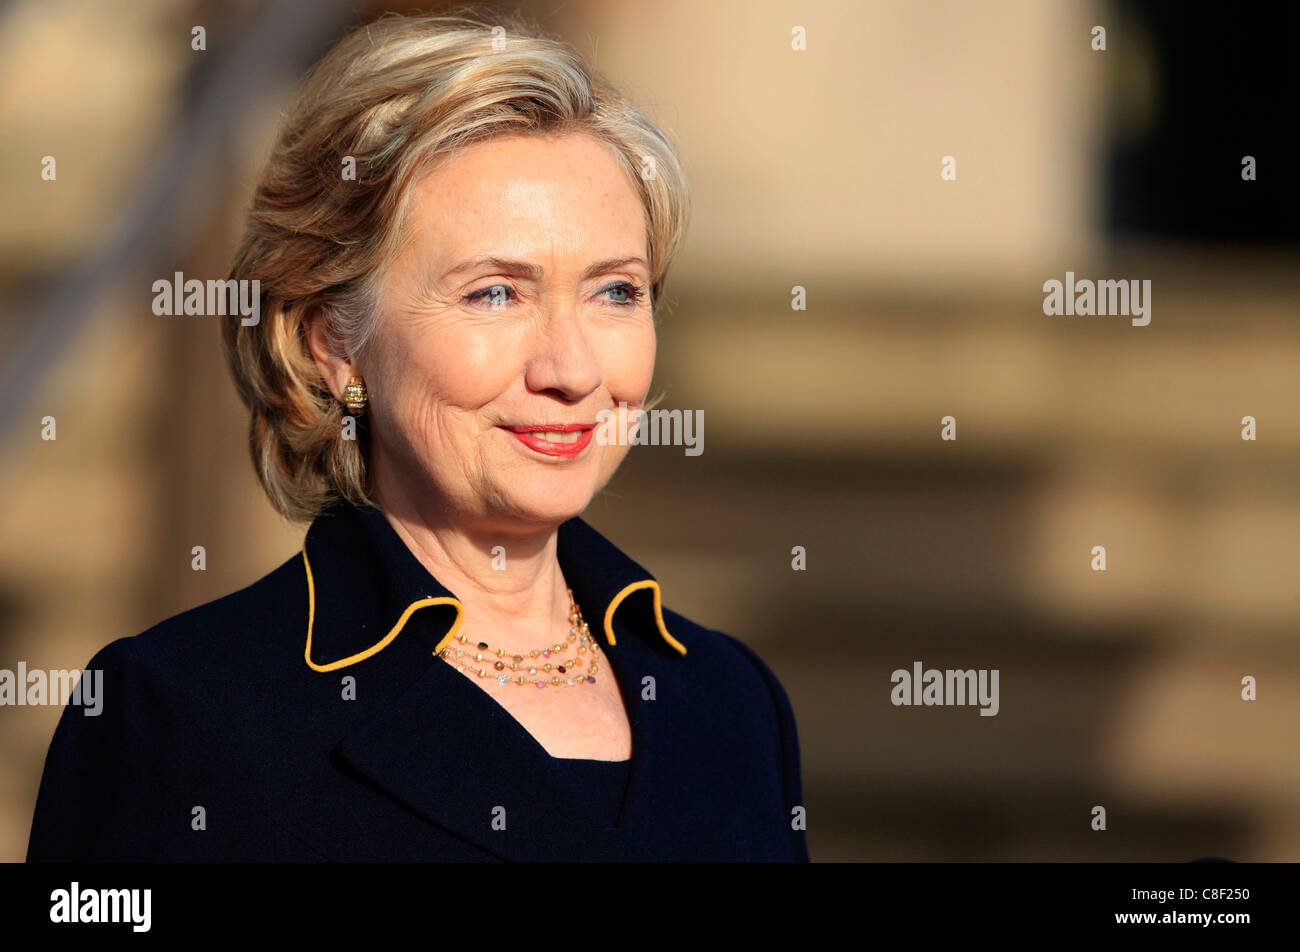 United States Secretary of State Hillary Clinton during her visit to Ireland - Stock Image